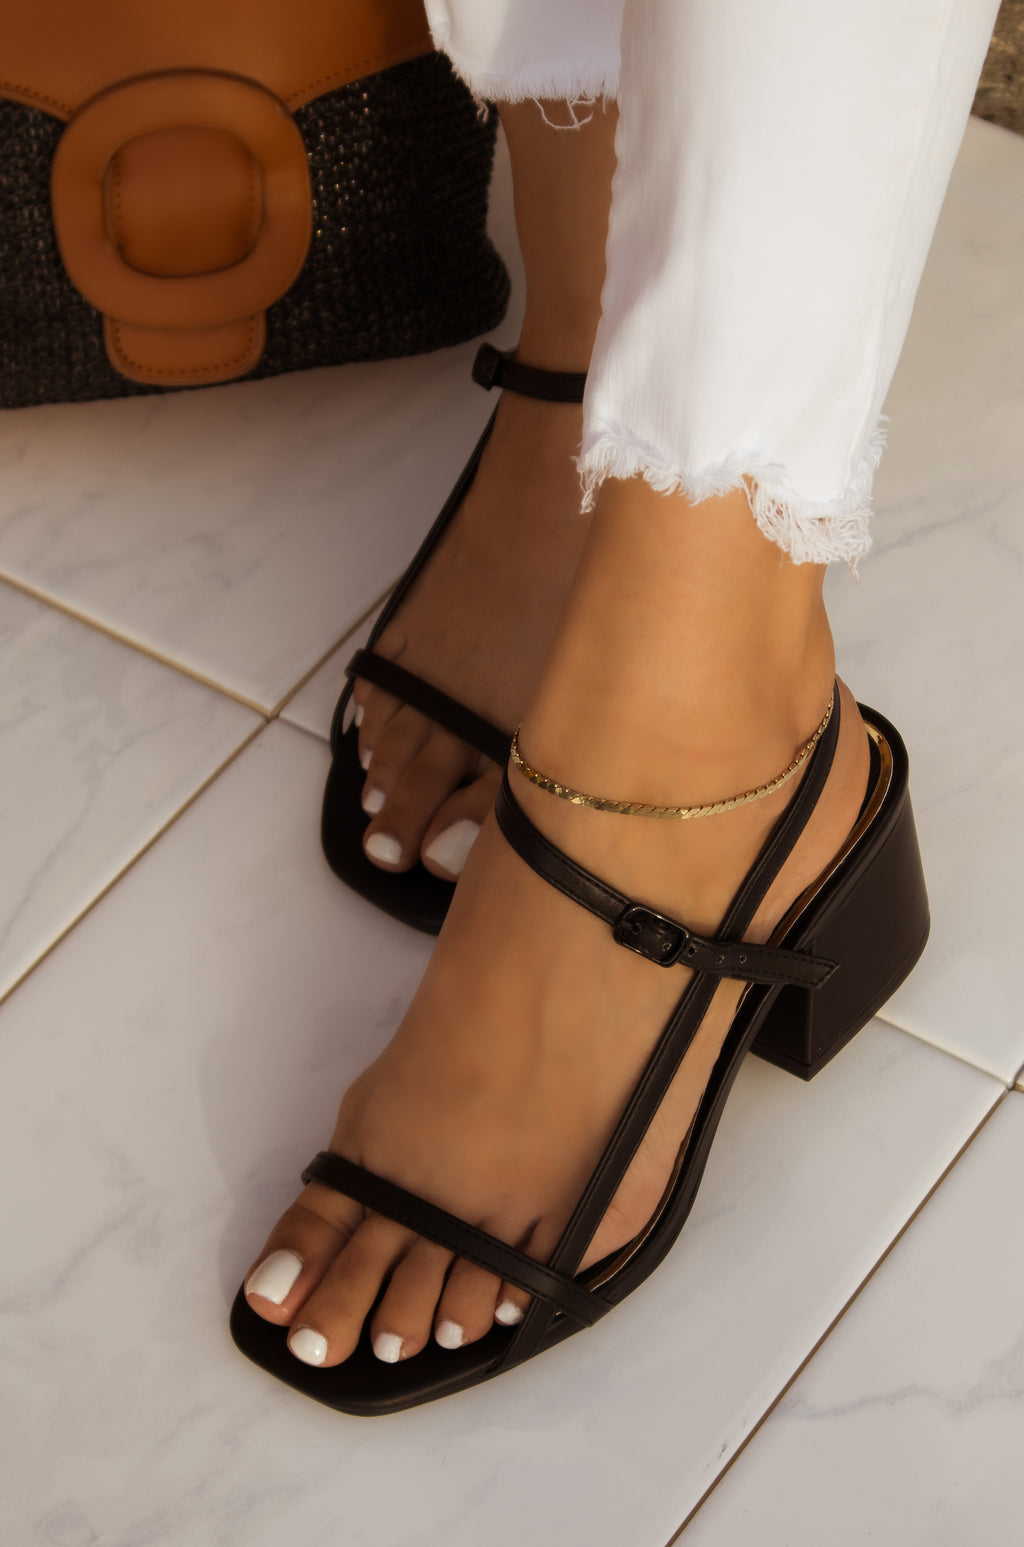 Flirty Moves - Black Heels